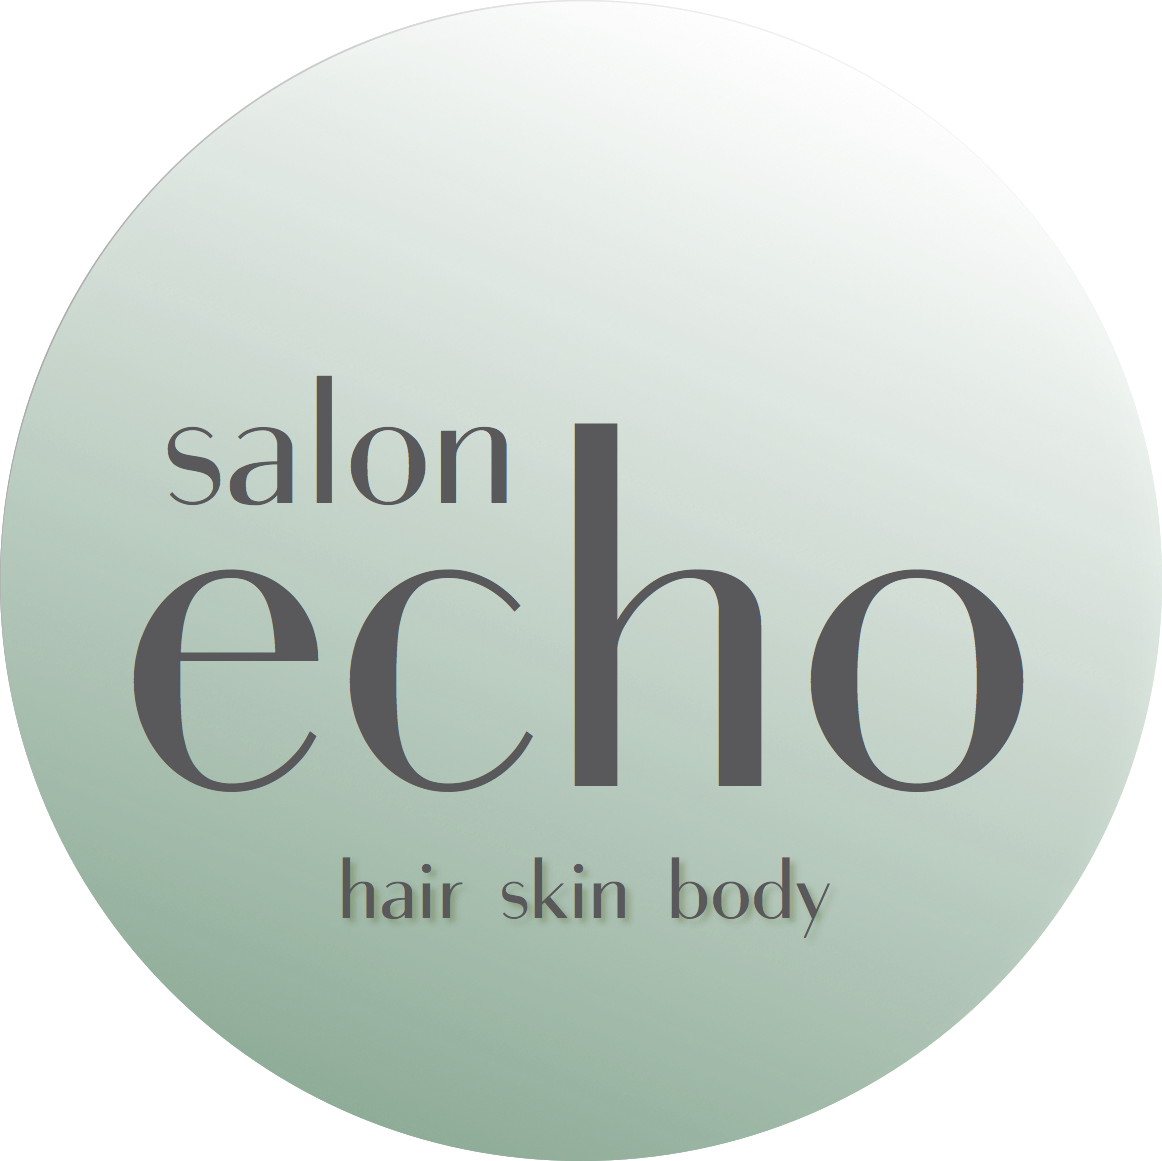 Salon Echo